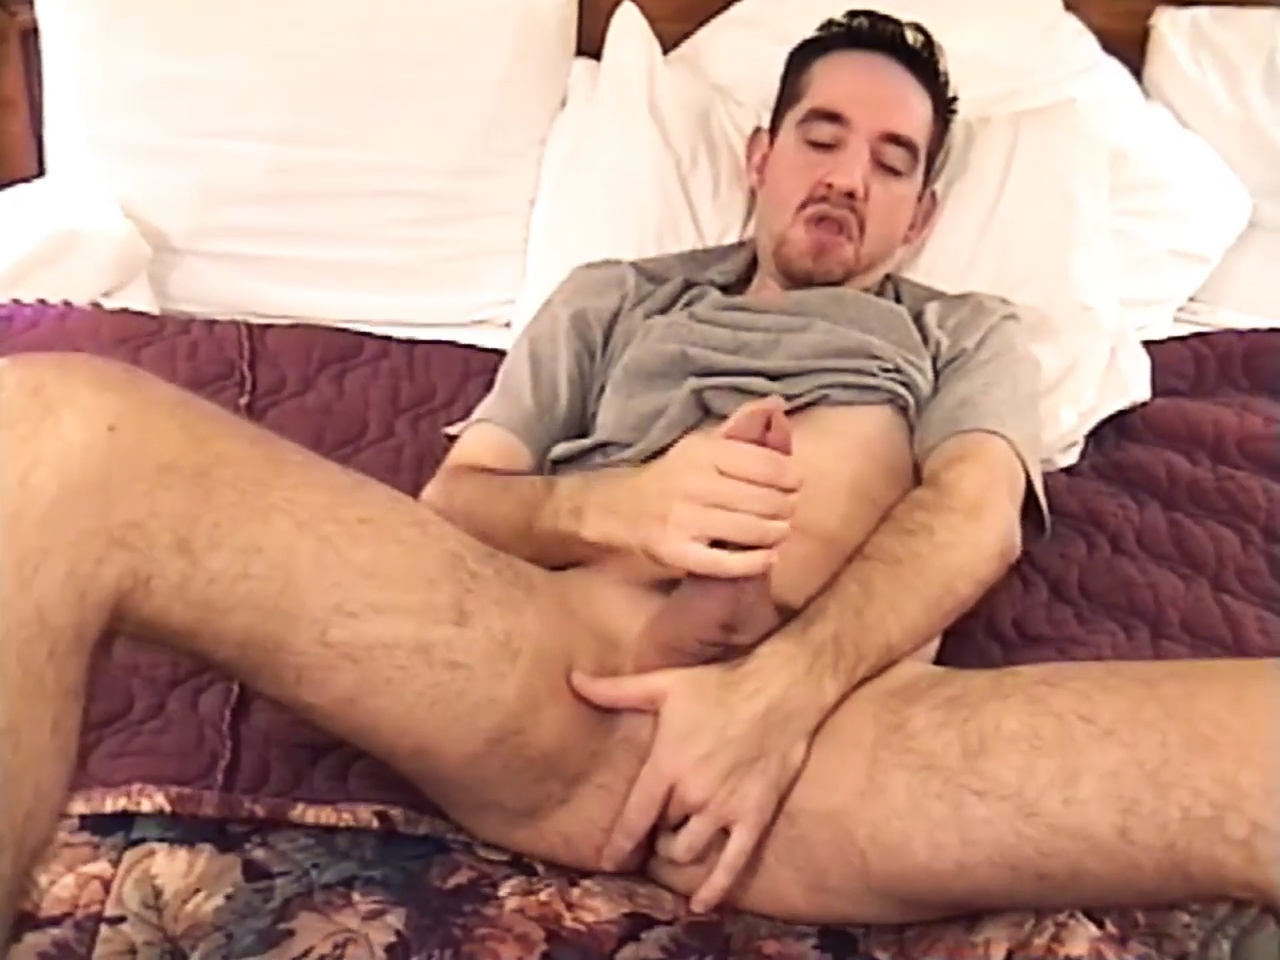 Young Amateur Charles Jerks Off - RamjetVideo Hustler omg boobs